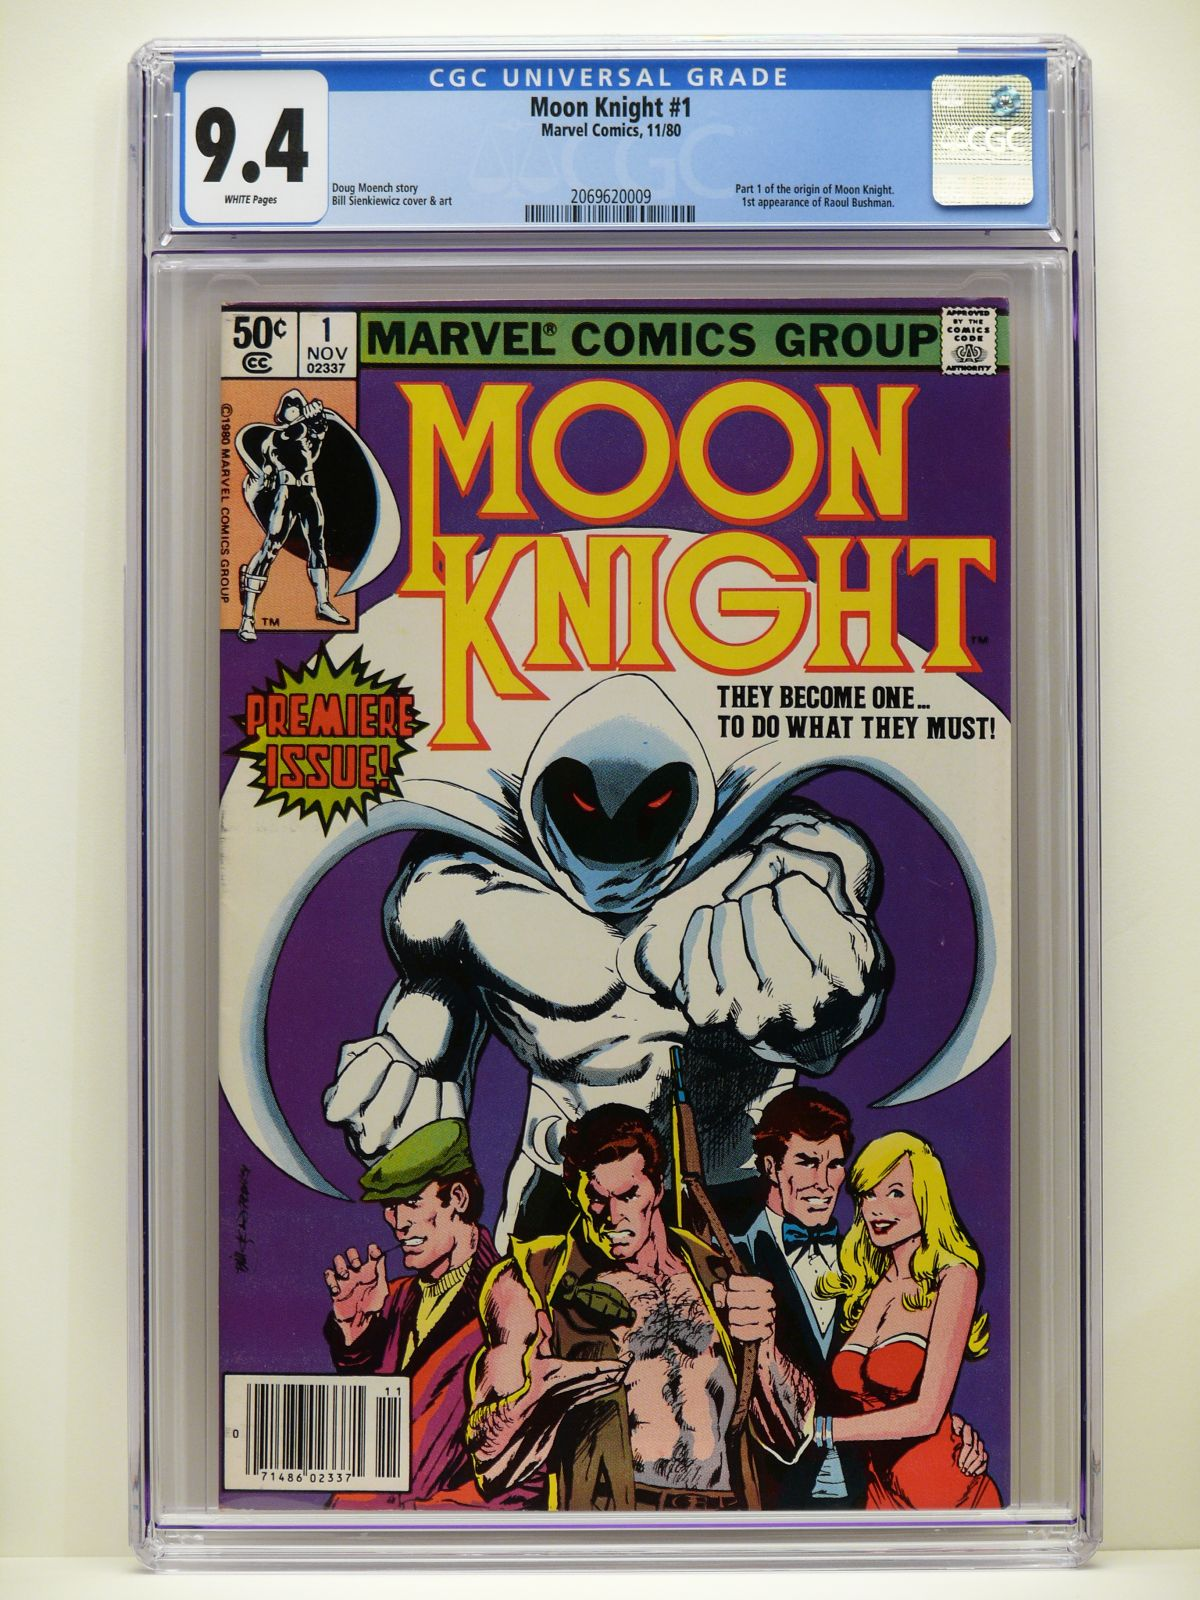 Moon Knight 1 Cgc 9 4 For Only 51 00 Ebay Auction Ending Today Comics Market Sales Advertising Ebay Dealers Etc Cgc Comic Book Collectors Chat Boards